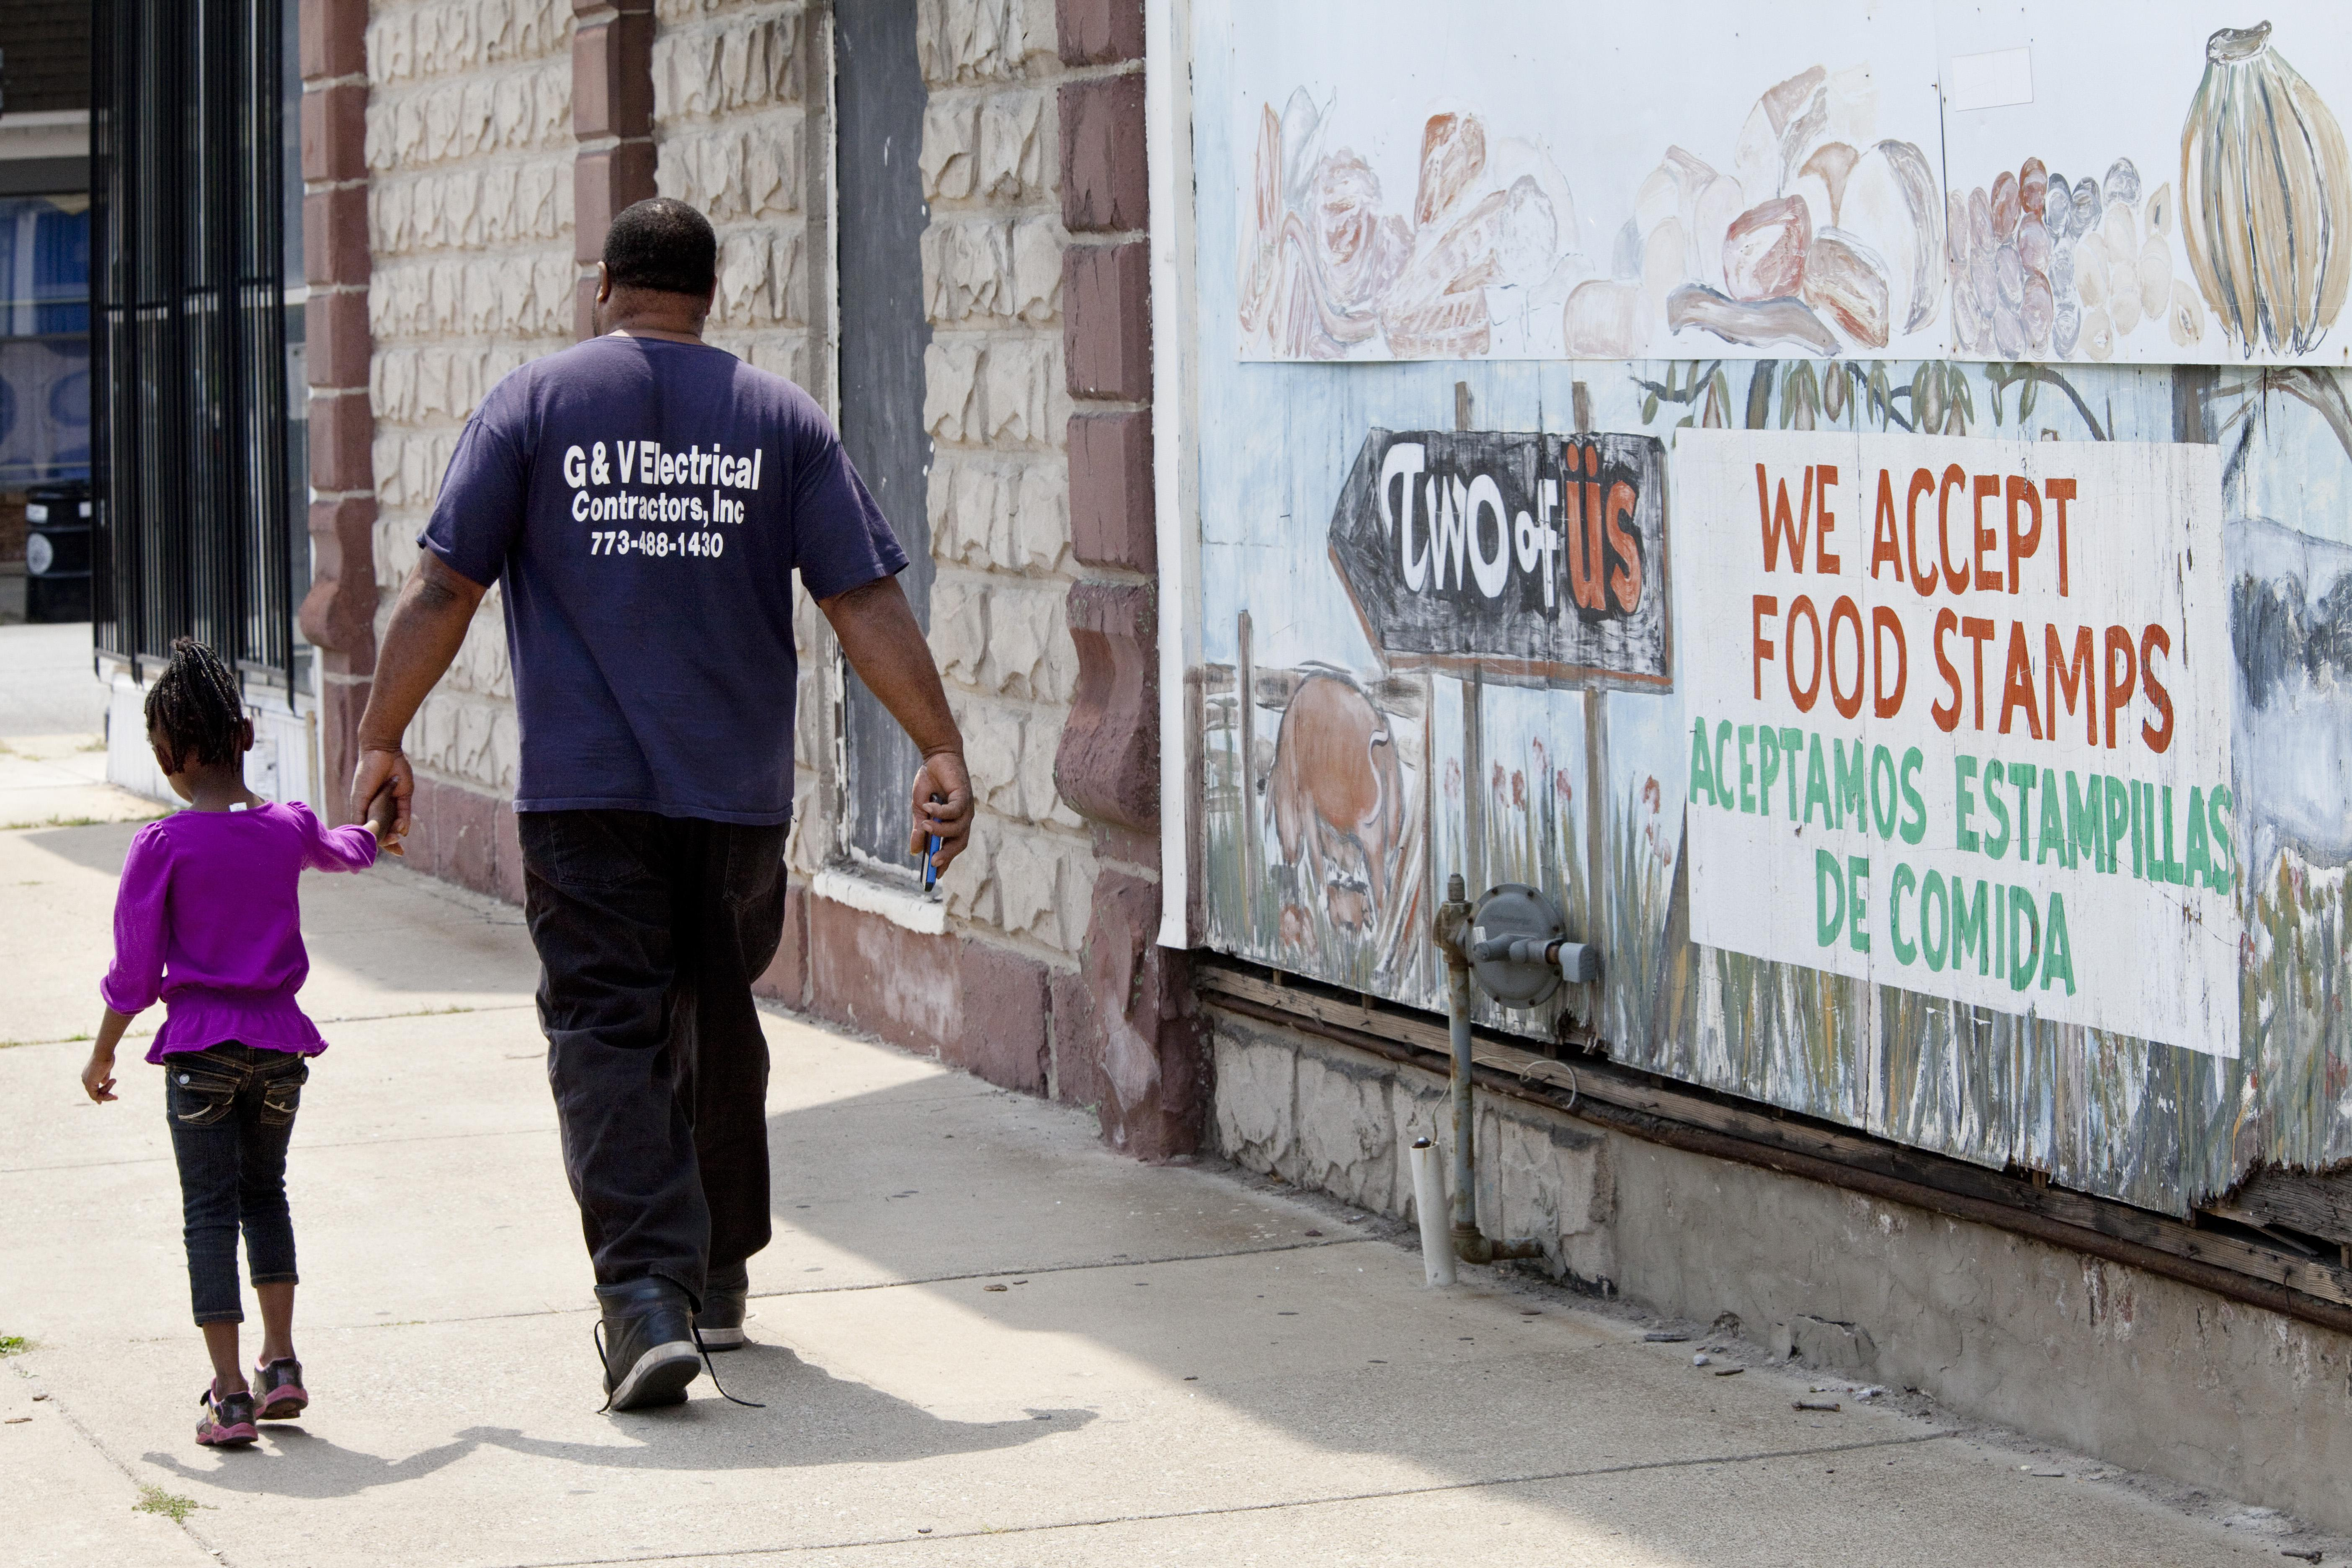 Suburban poverty is a result of the weak economy and people fleeing violence in cities like Chicago